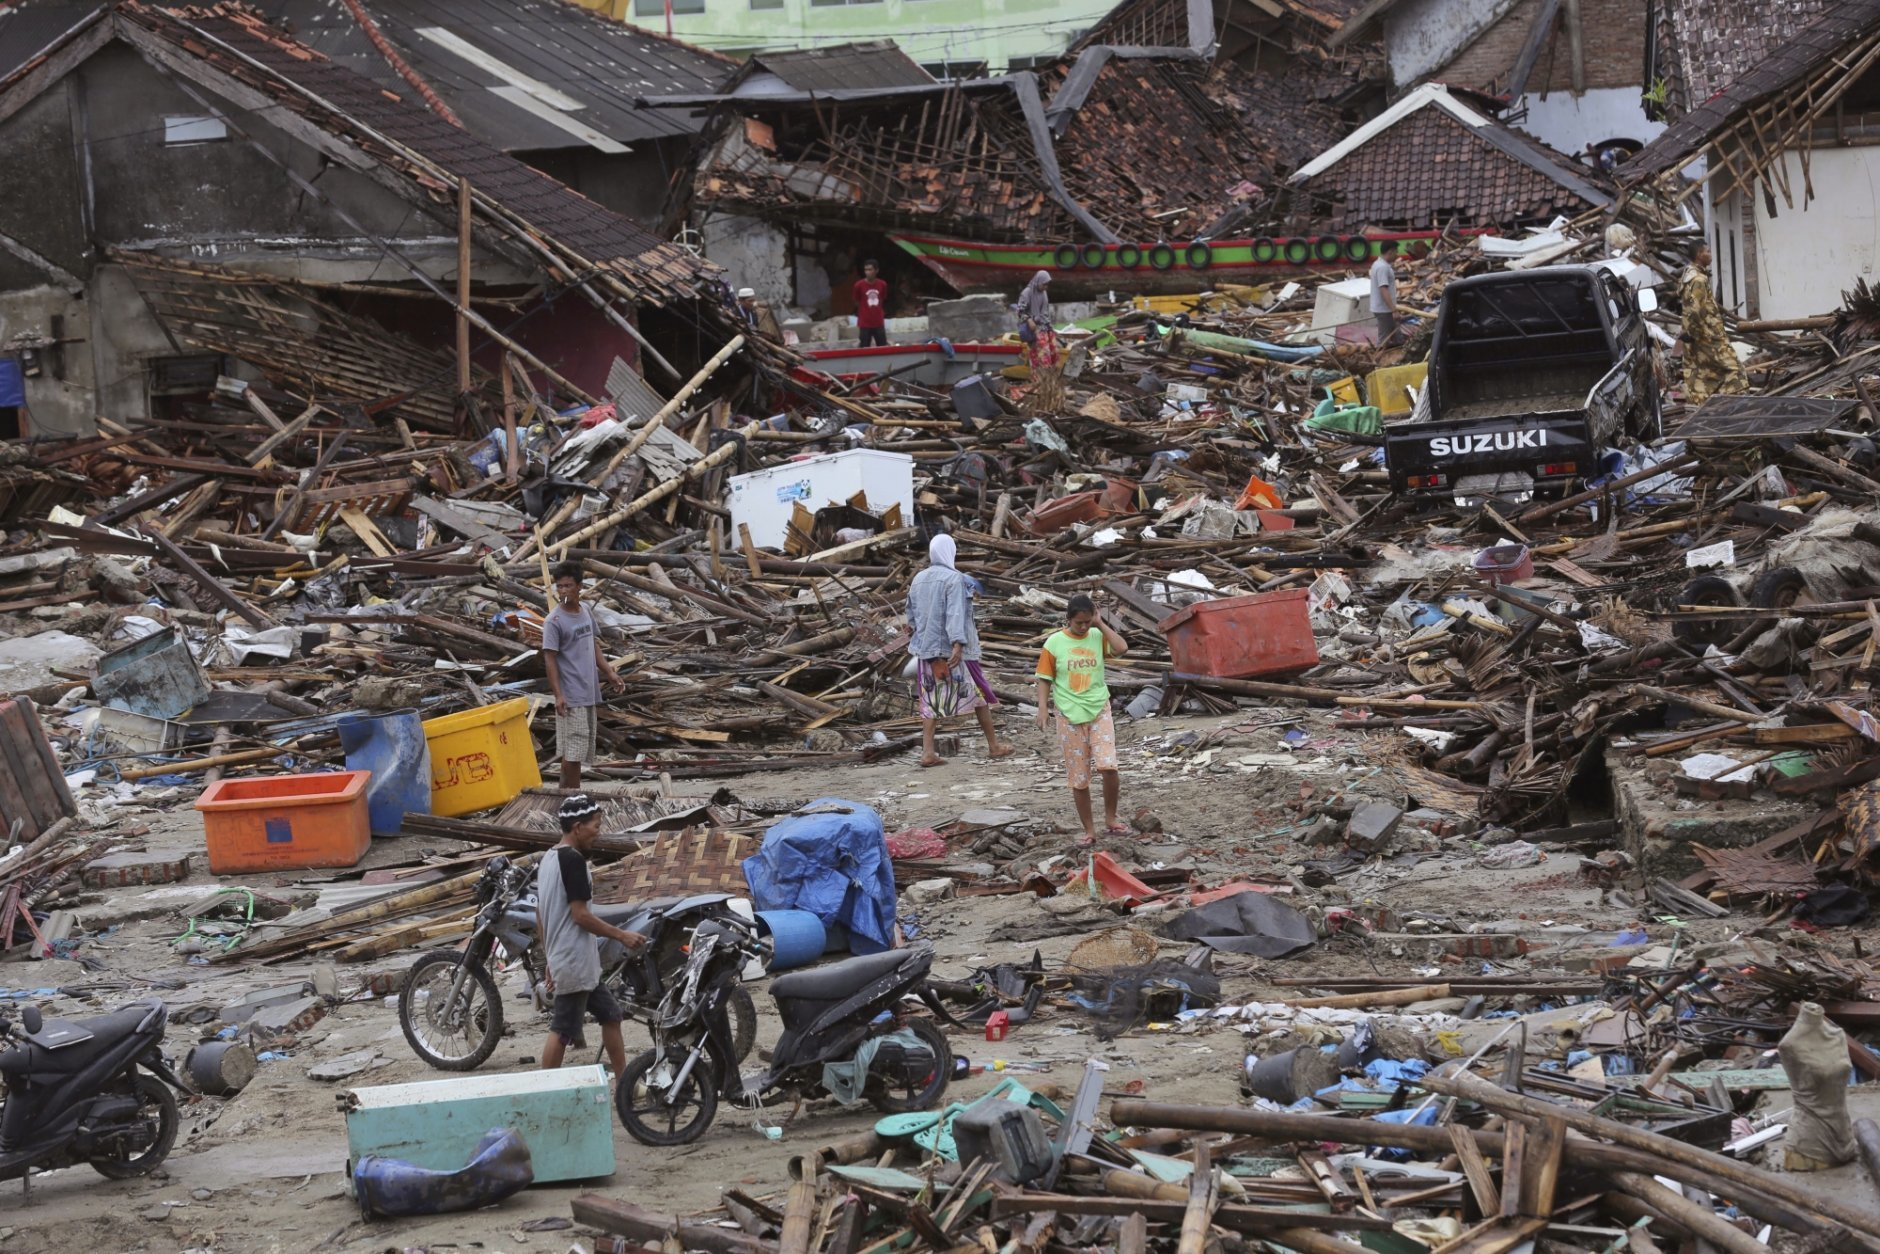 People inspect the damage at a tsunami-ravaged village in Sumur, Indonesia, Tuesday, Dec. 25, 2018. The Christmas holiday was somber with prayers for tsunami victims in the Indonesian region hit by waves that struck without warning Saturday night.(AP Photo/Tatan Syuflana)